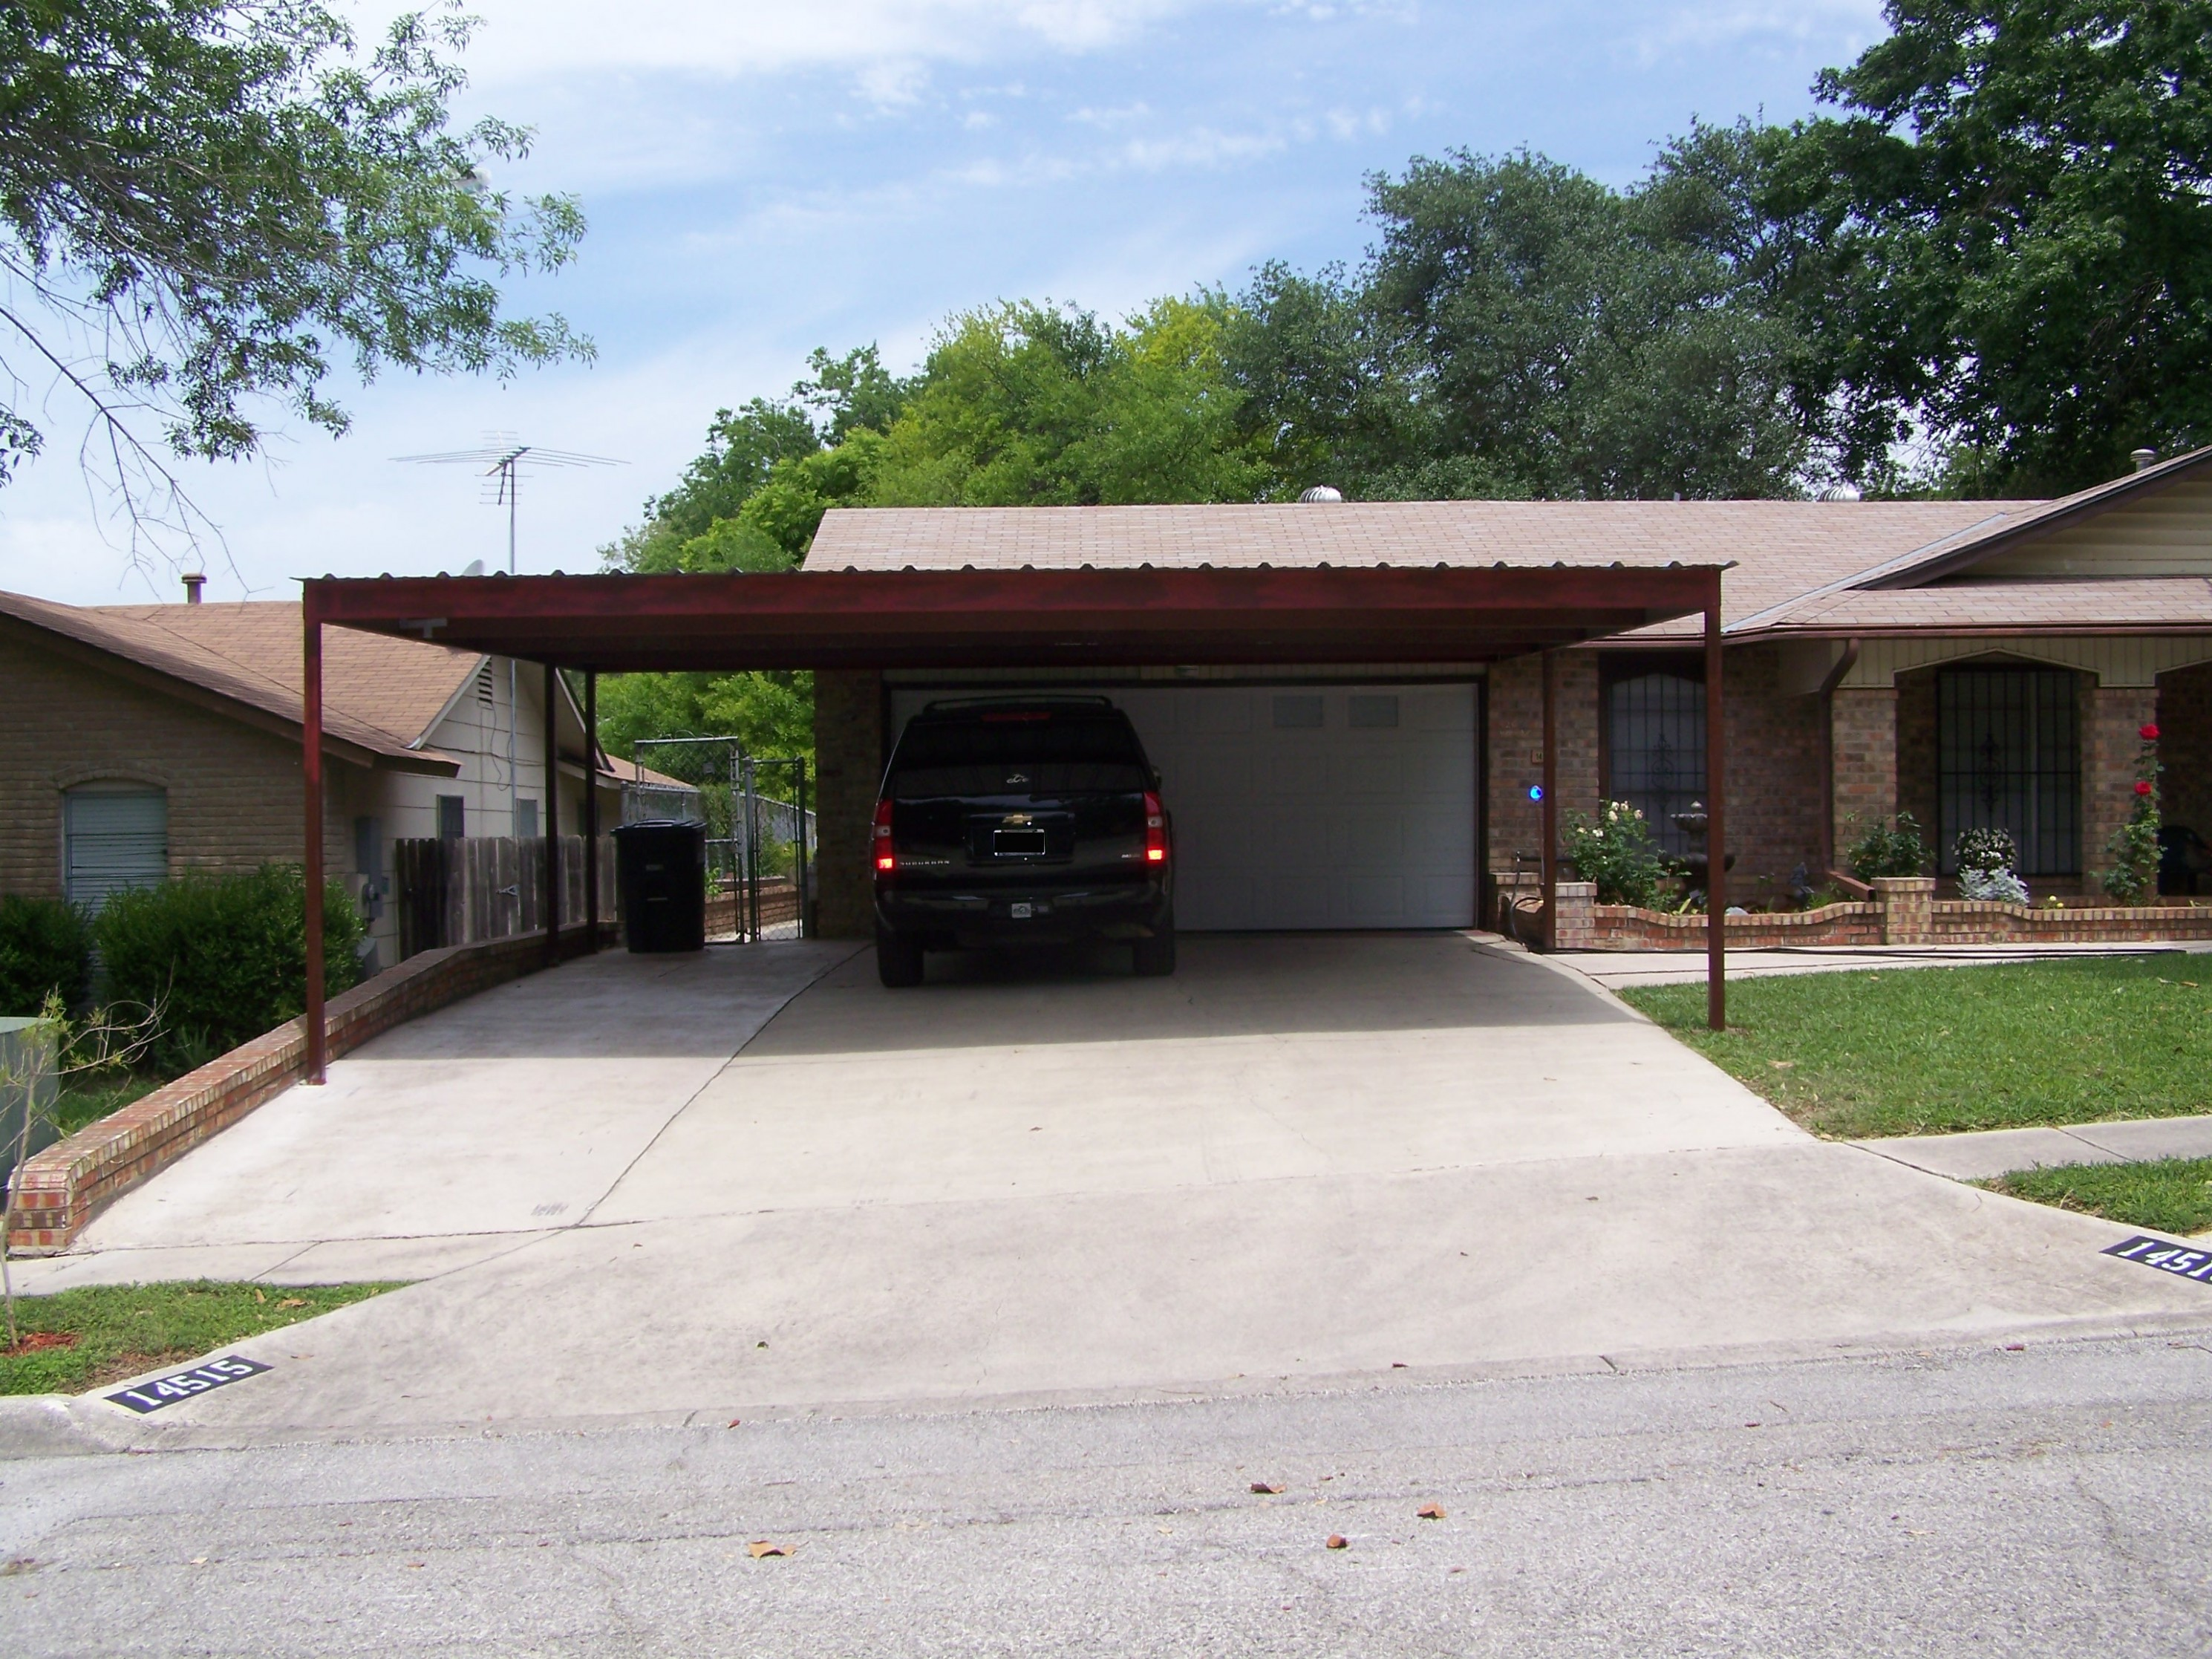 Seven Ways On How To Prepare For 200 Vehicle Carport | 20 vehicle carport